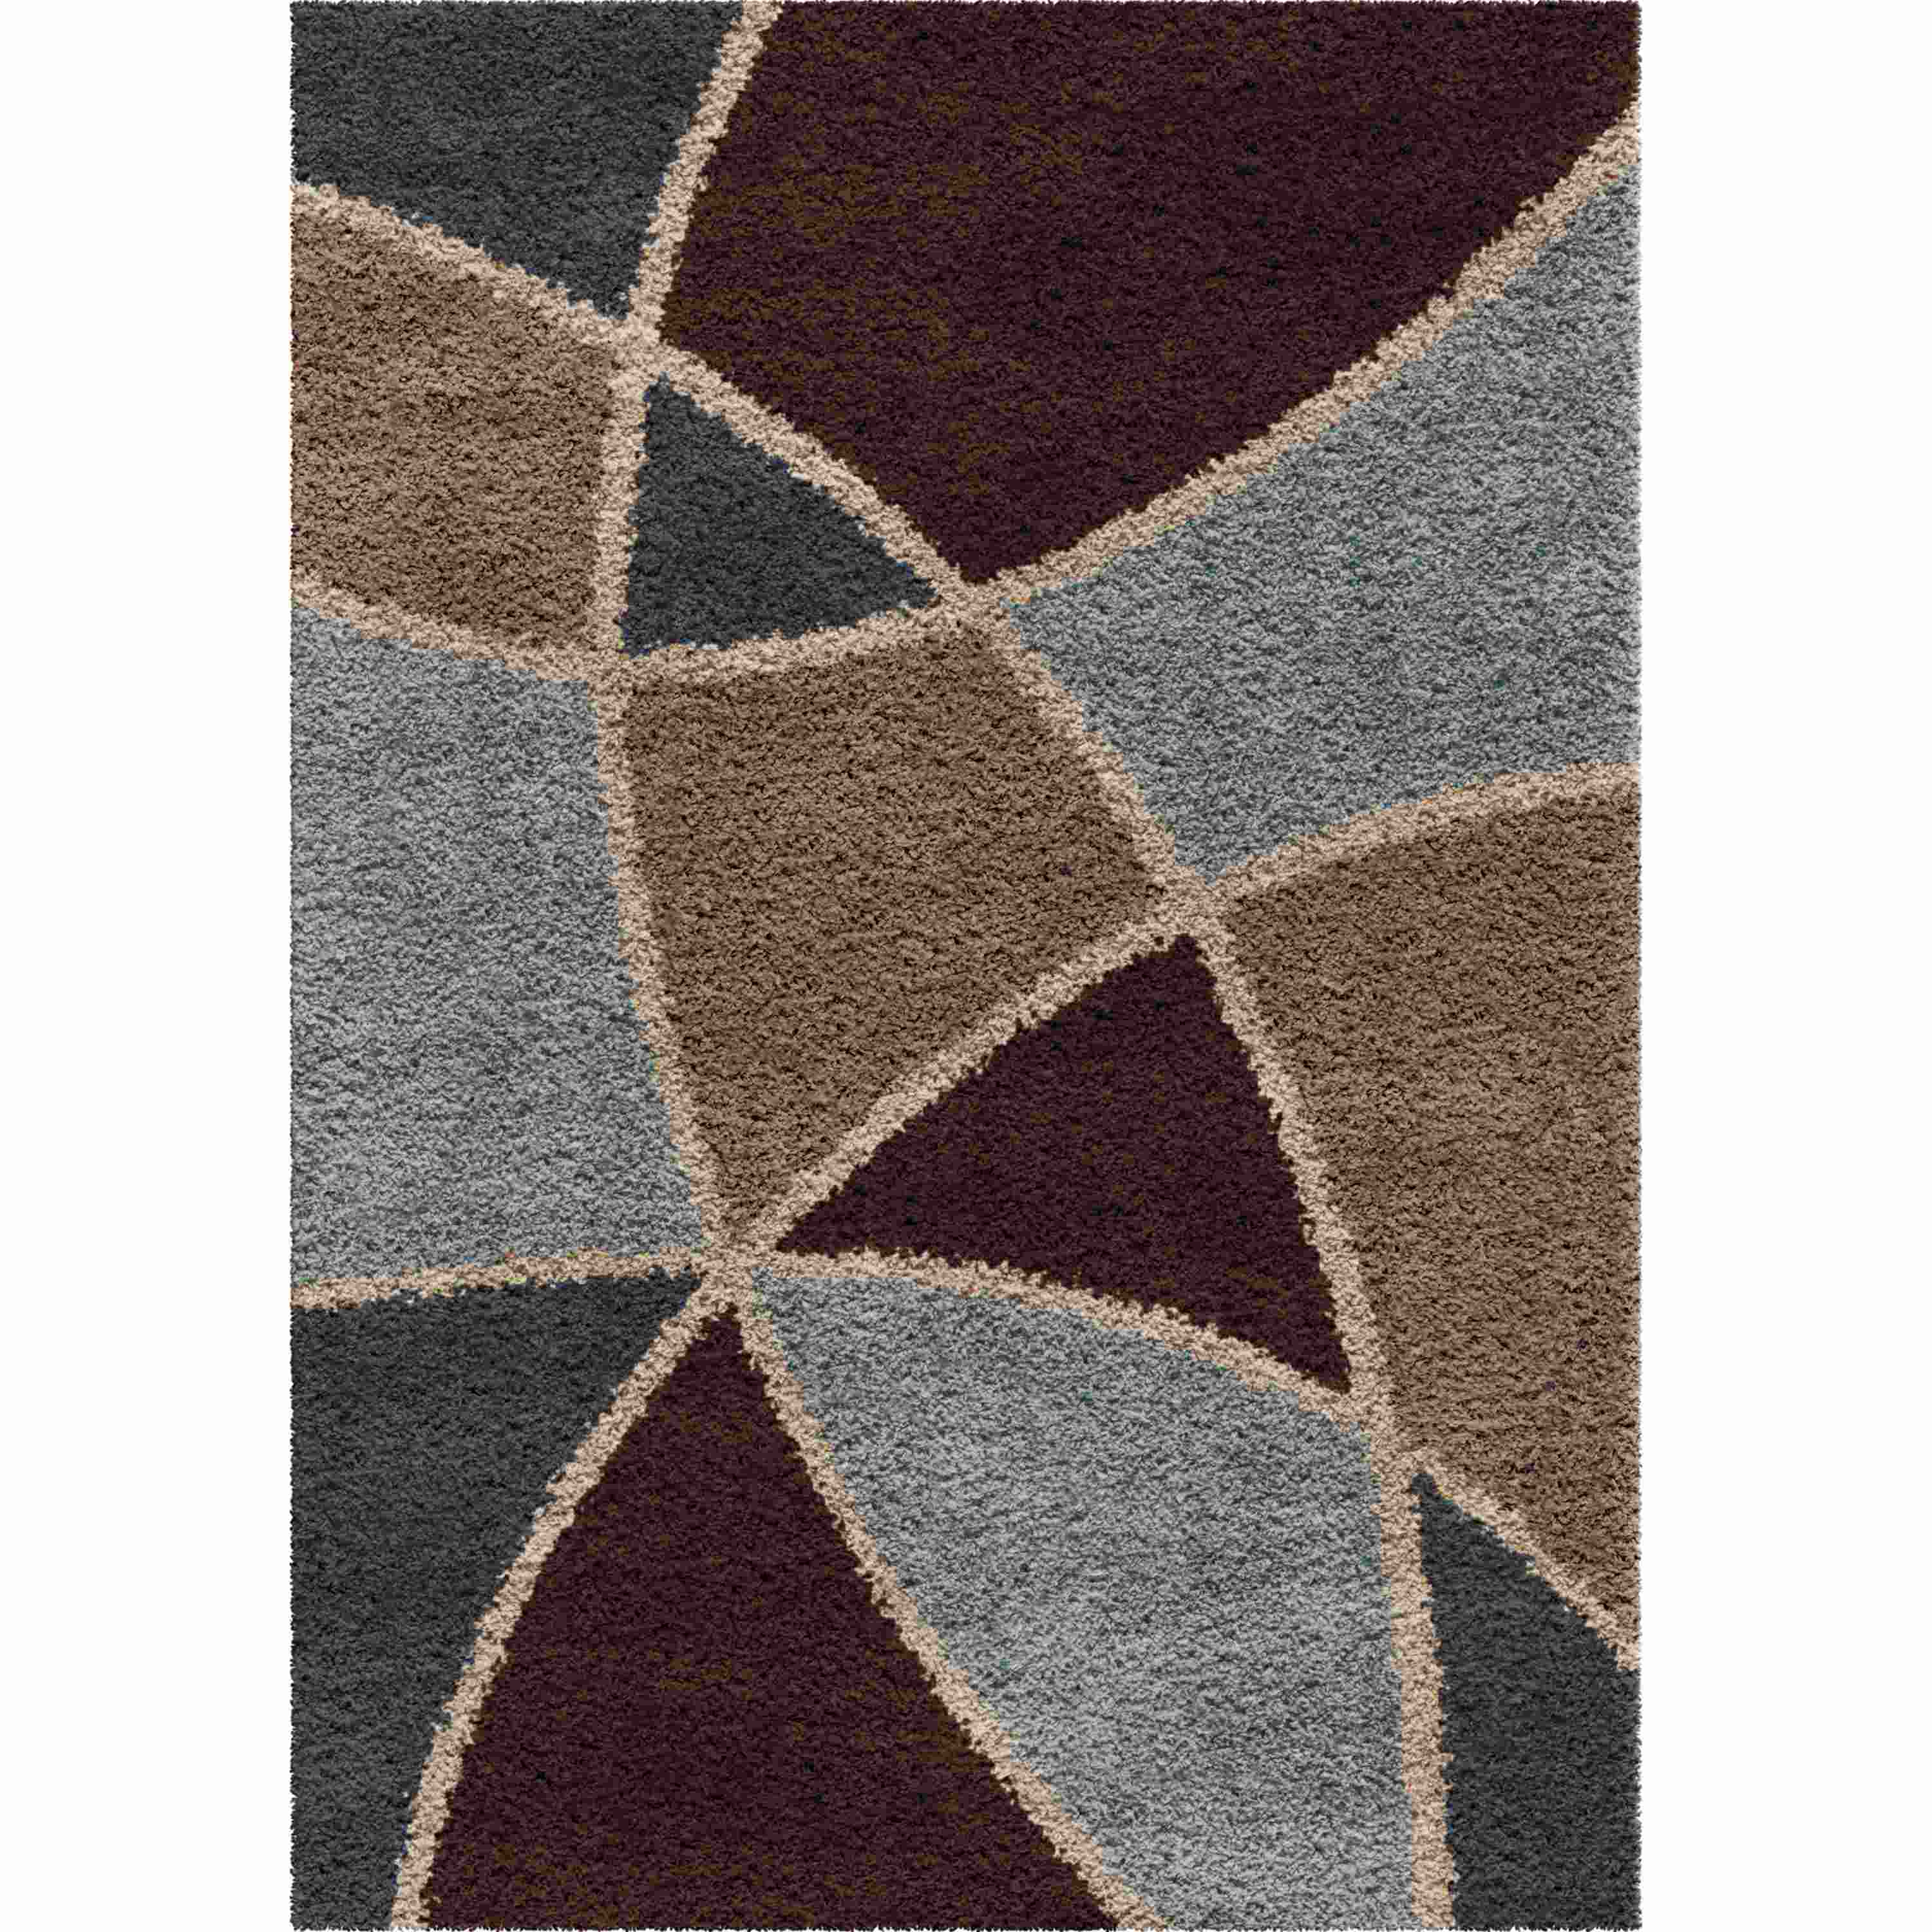 Orian Rugs Shag Abstract Divulge Brown Area Rug